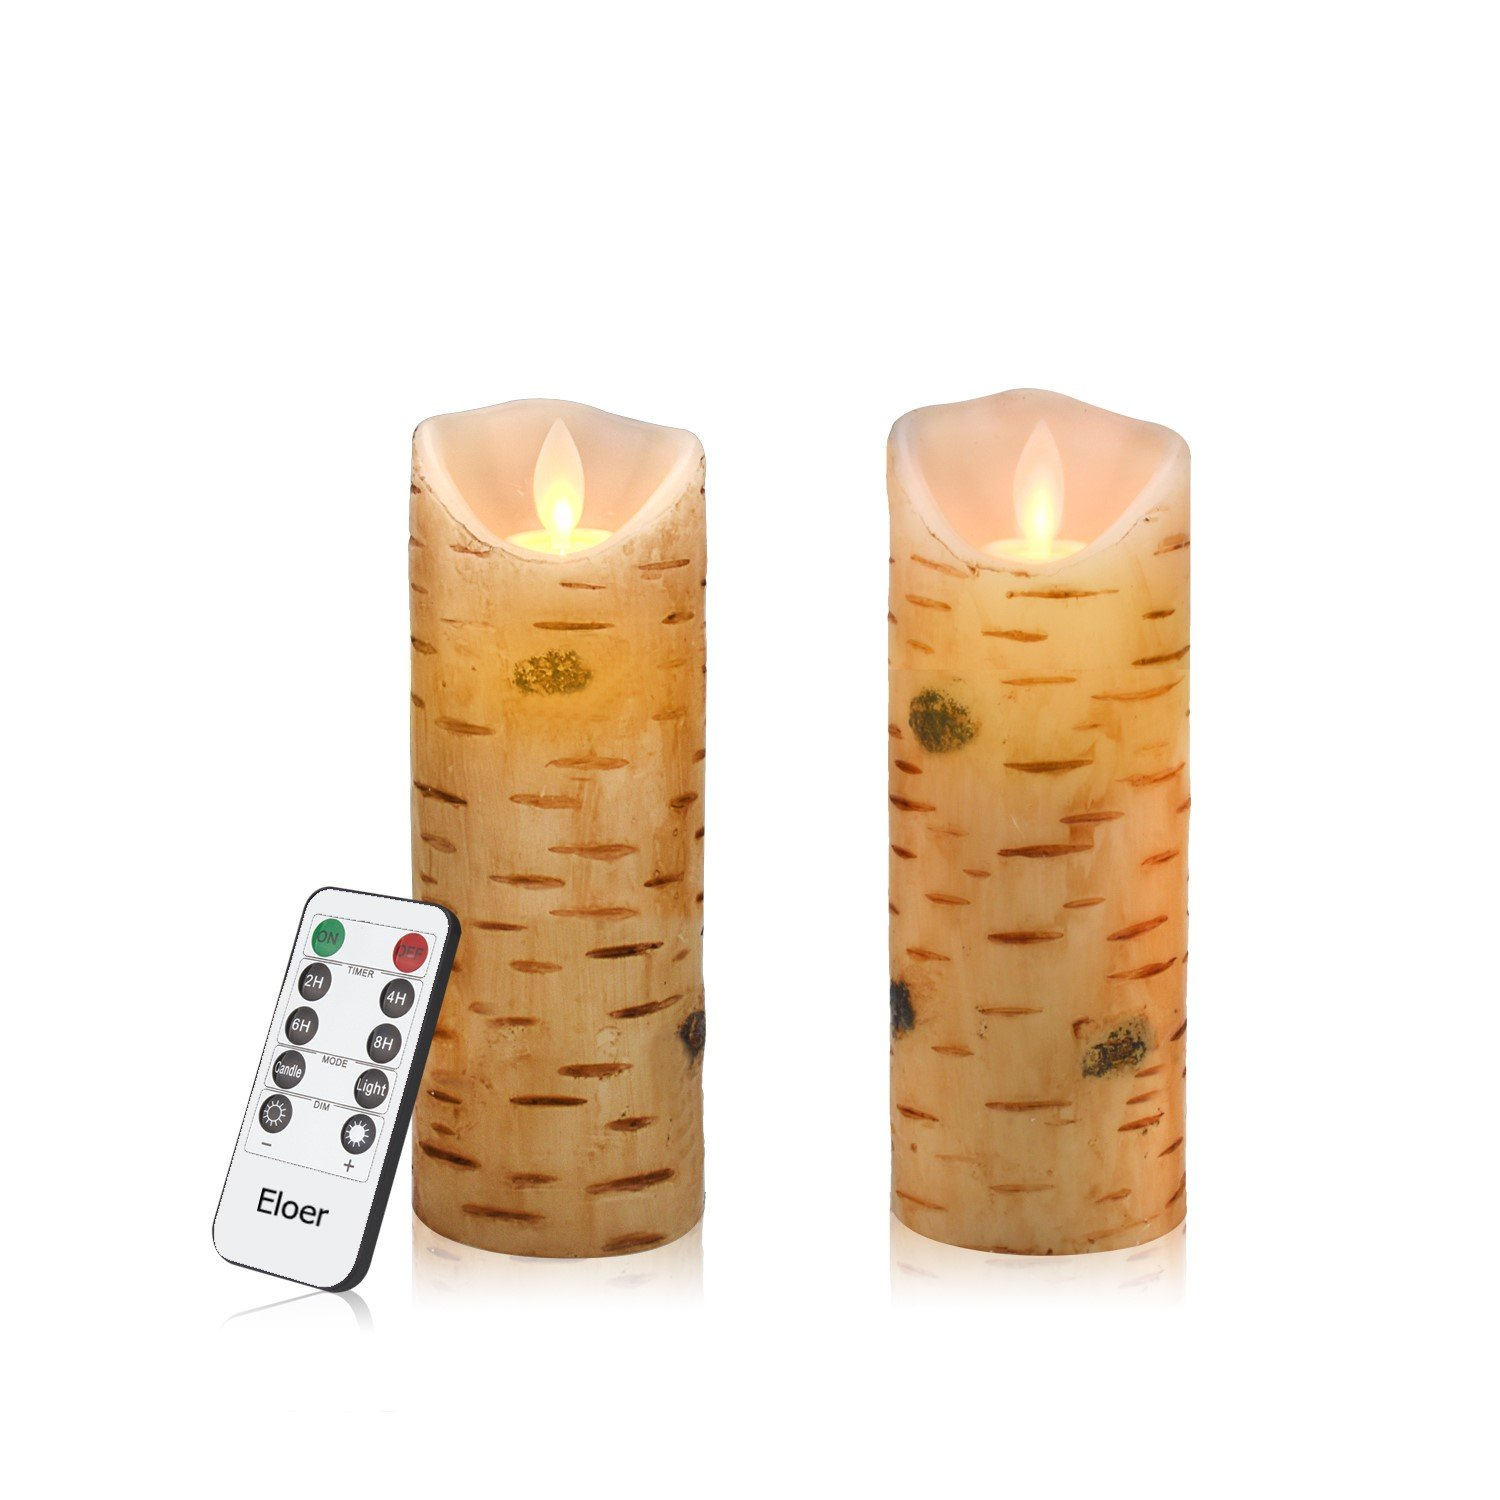 Eloer Flameless Candles 2 Pack Set Dripless Real Wax LED Pillars Include Realistic Flickering Flames and 10-Key Remote Control with 24-Hour Timer Function 400+ Hours by 2 AA Batteries (Birch Bark)